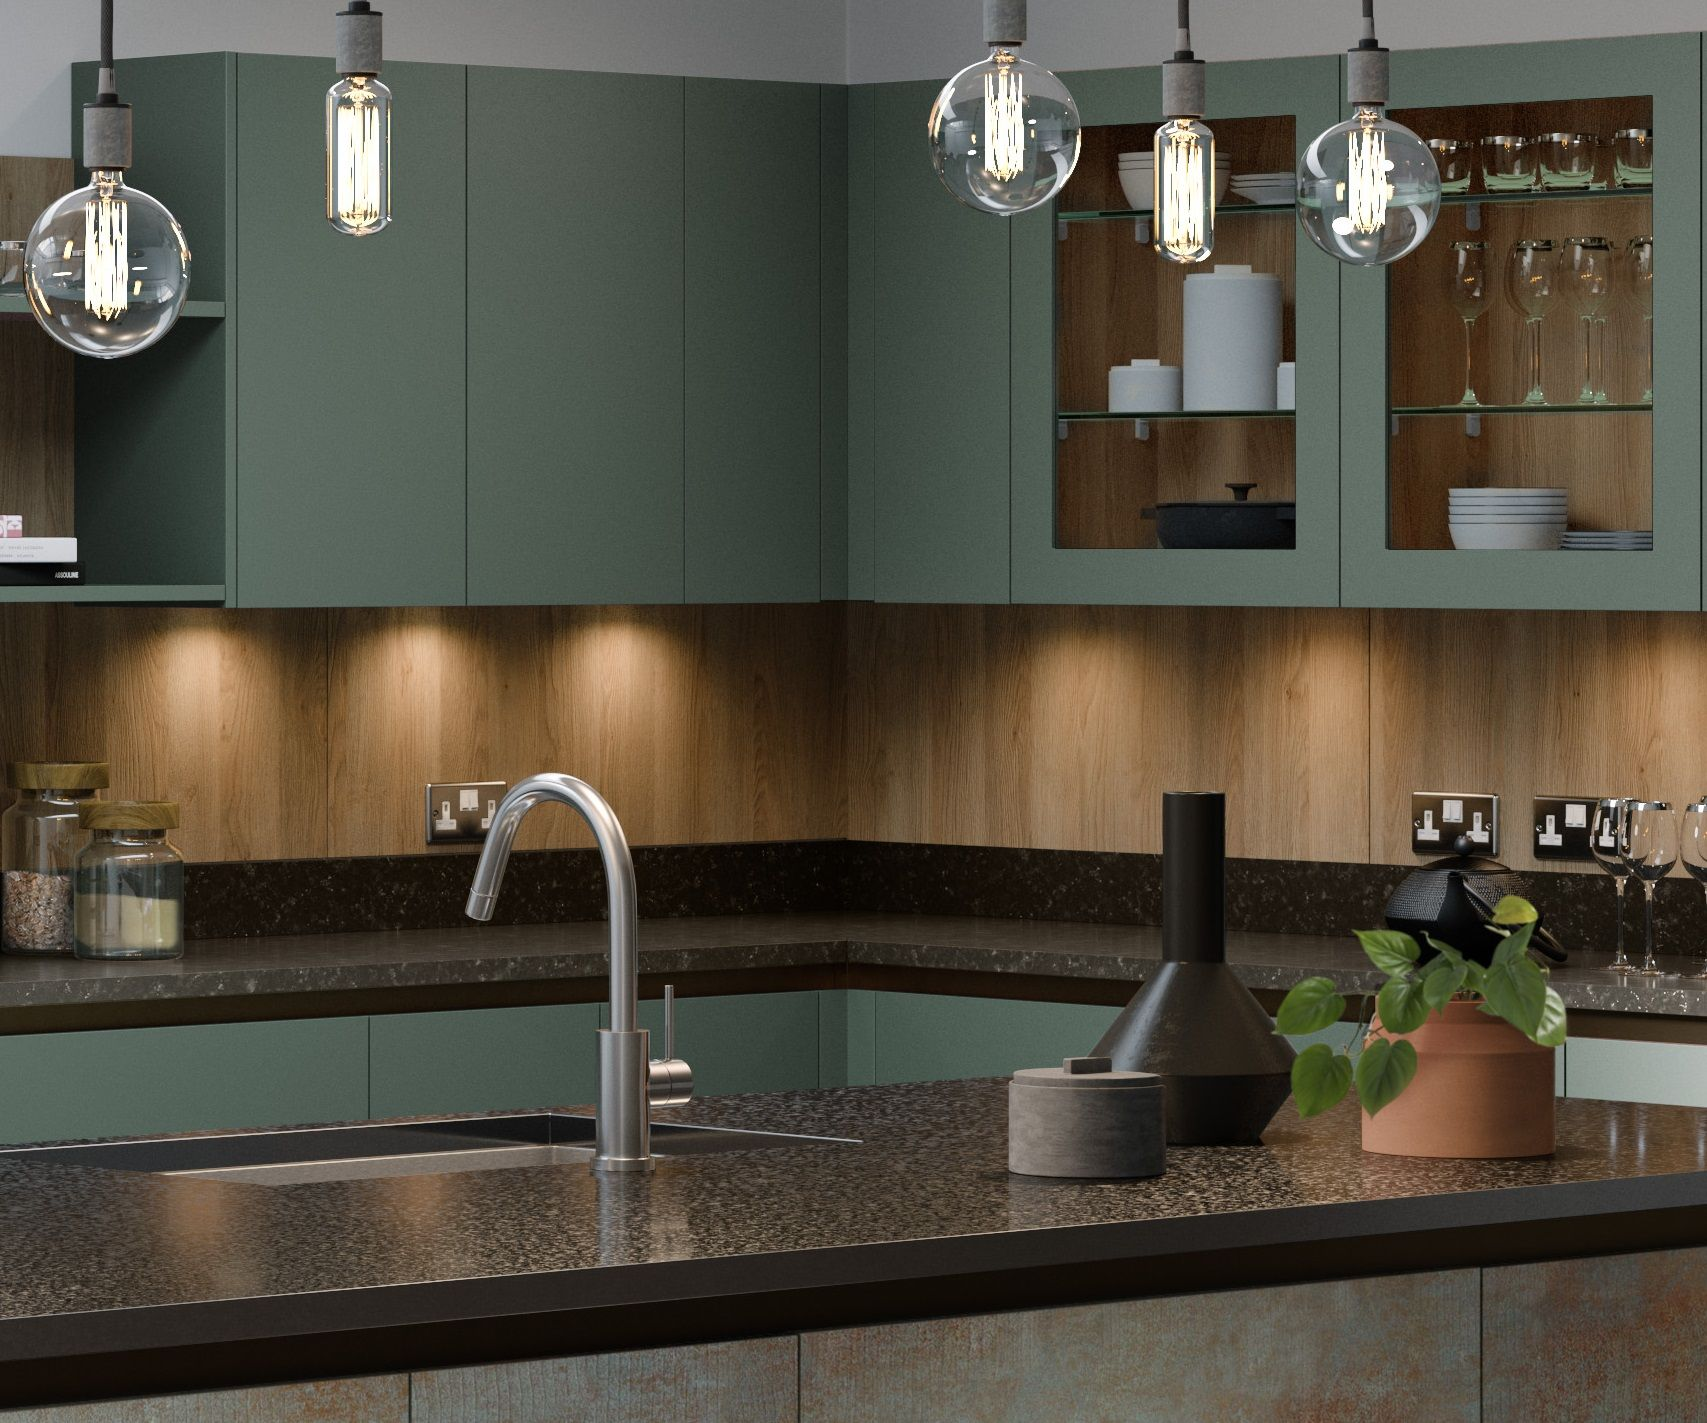 Great Ways For Lighting A Kitchen: A Great Way To Bring Areas Of Your Kitchen To Life Is